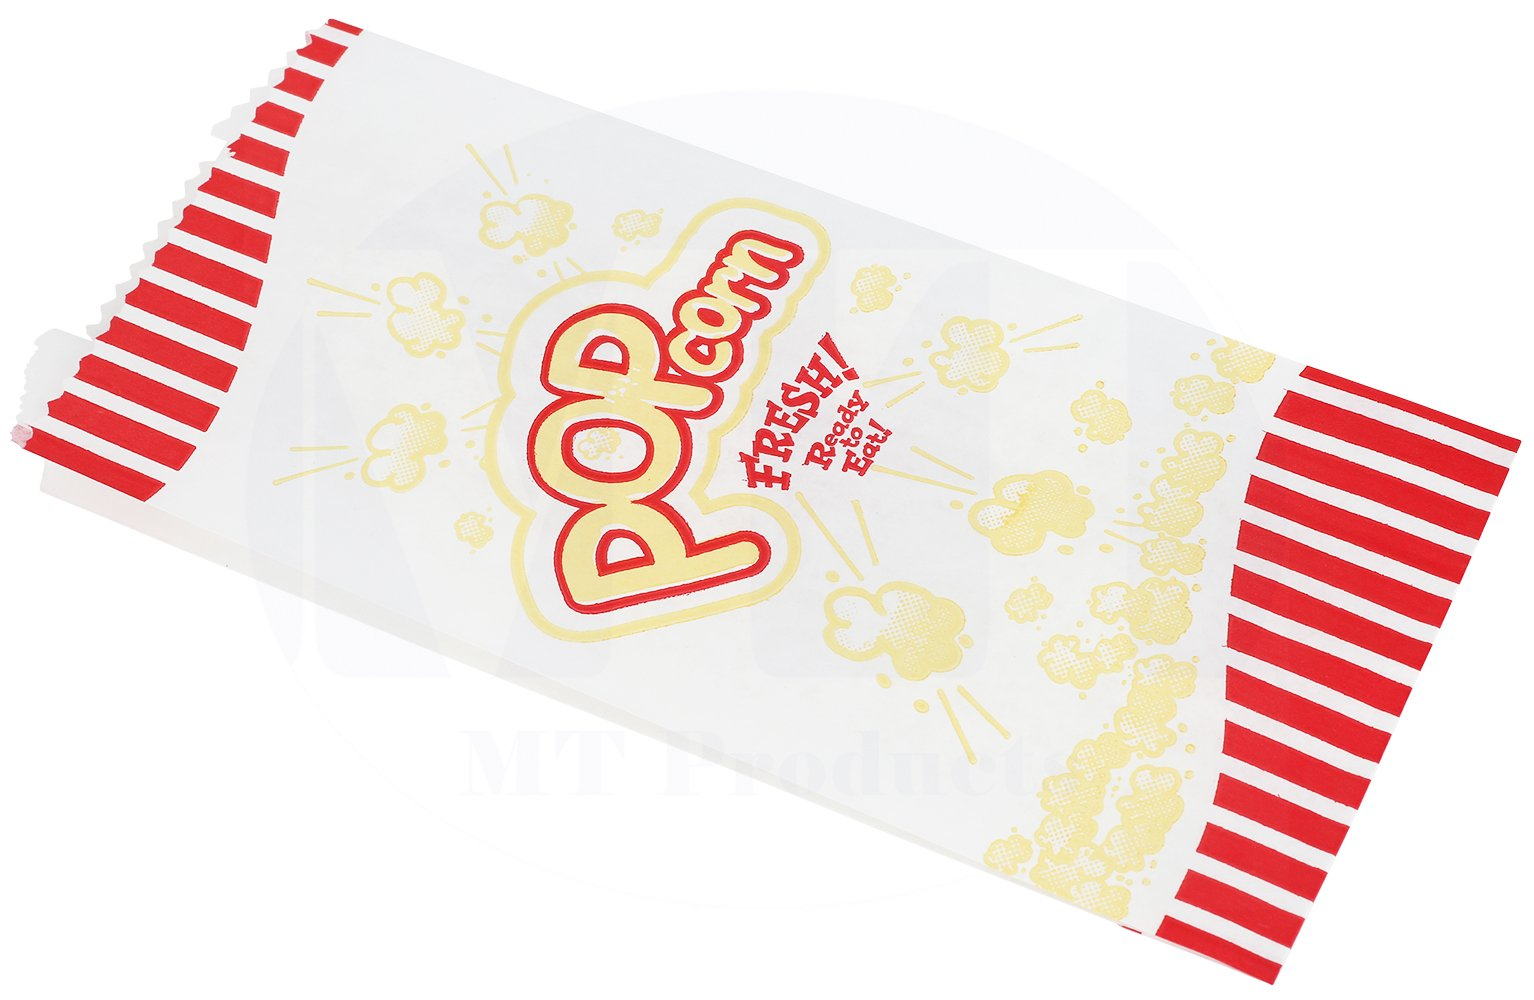 MT Products Popcorn Bags, 1 oz, Red & Yellow, (100 Pieces)